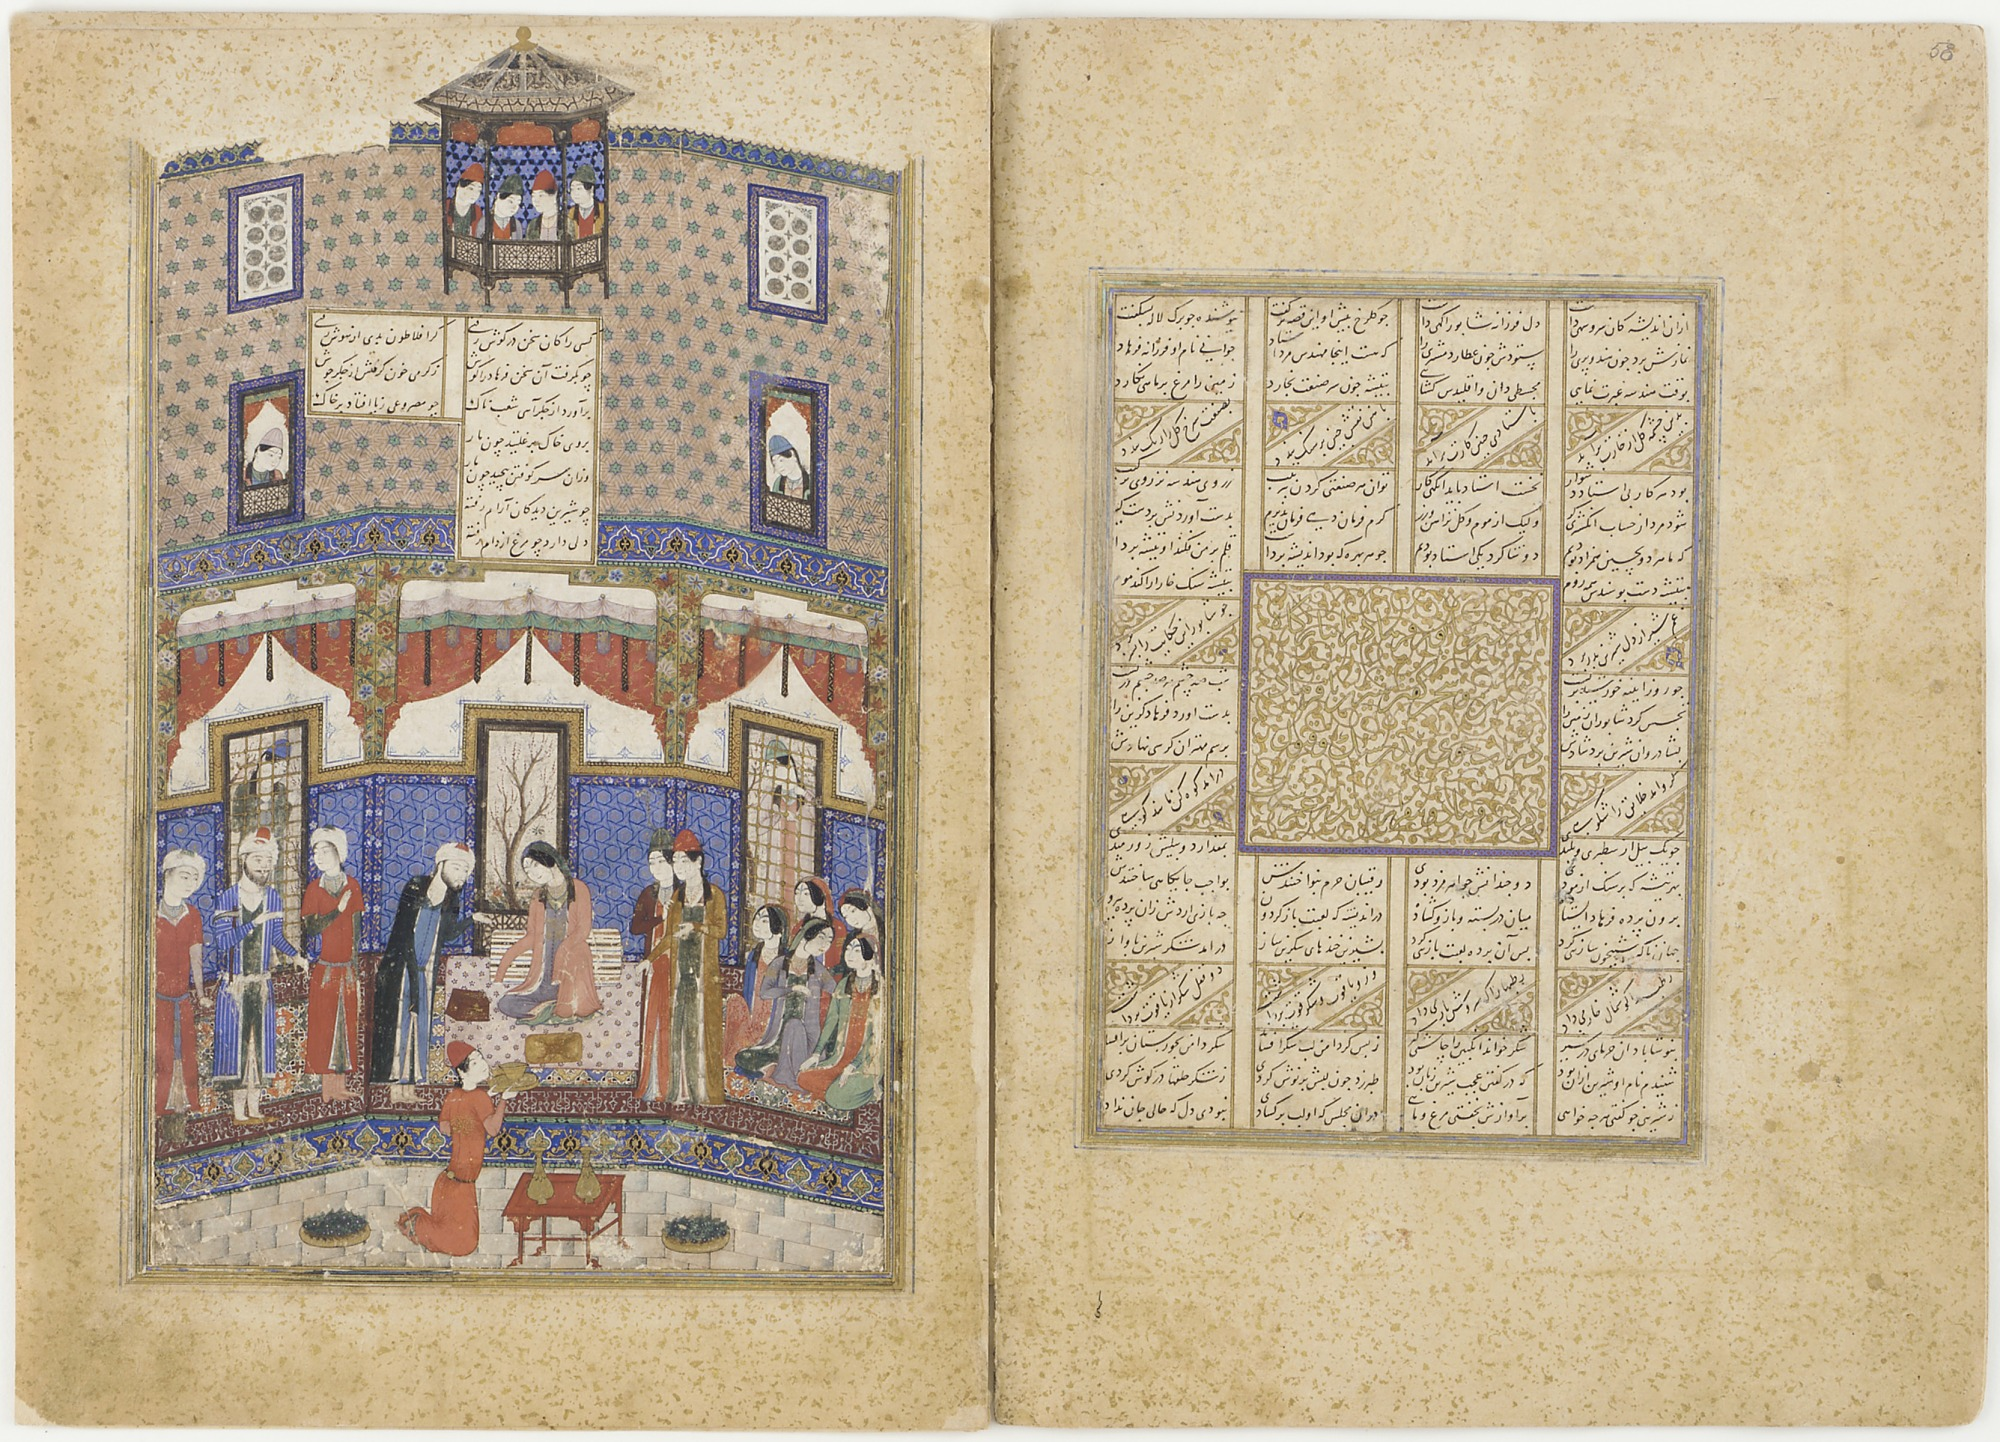 facing folios 58 bound, 59 detached: Folio from a Khusraw u Shirin by Nizami (d.1209); recto: illustration: The sculptor Farhad brought before Shirin; verso: text